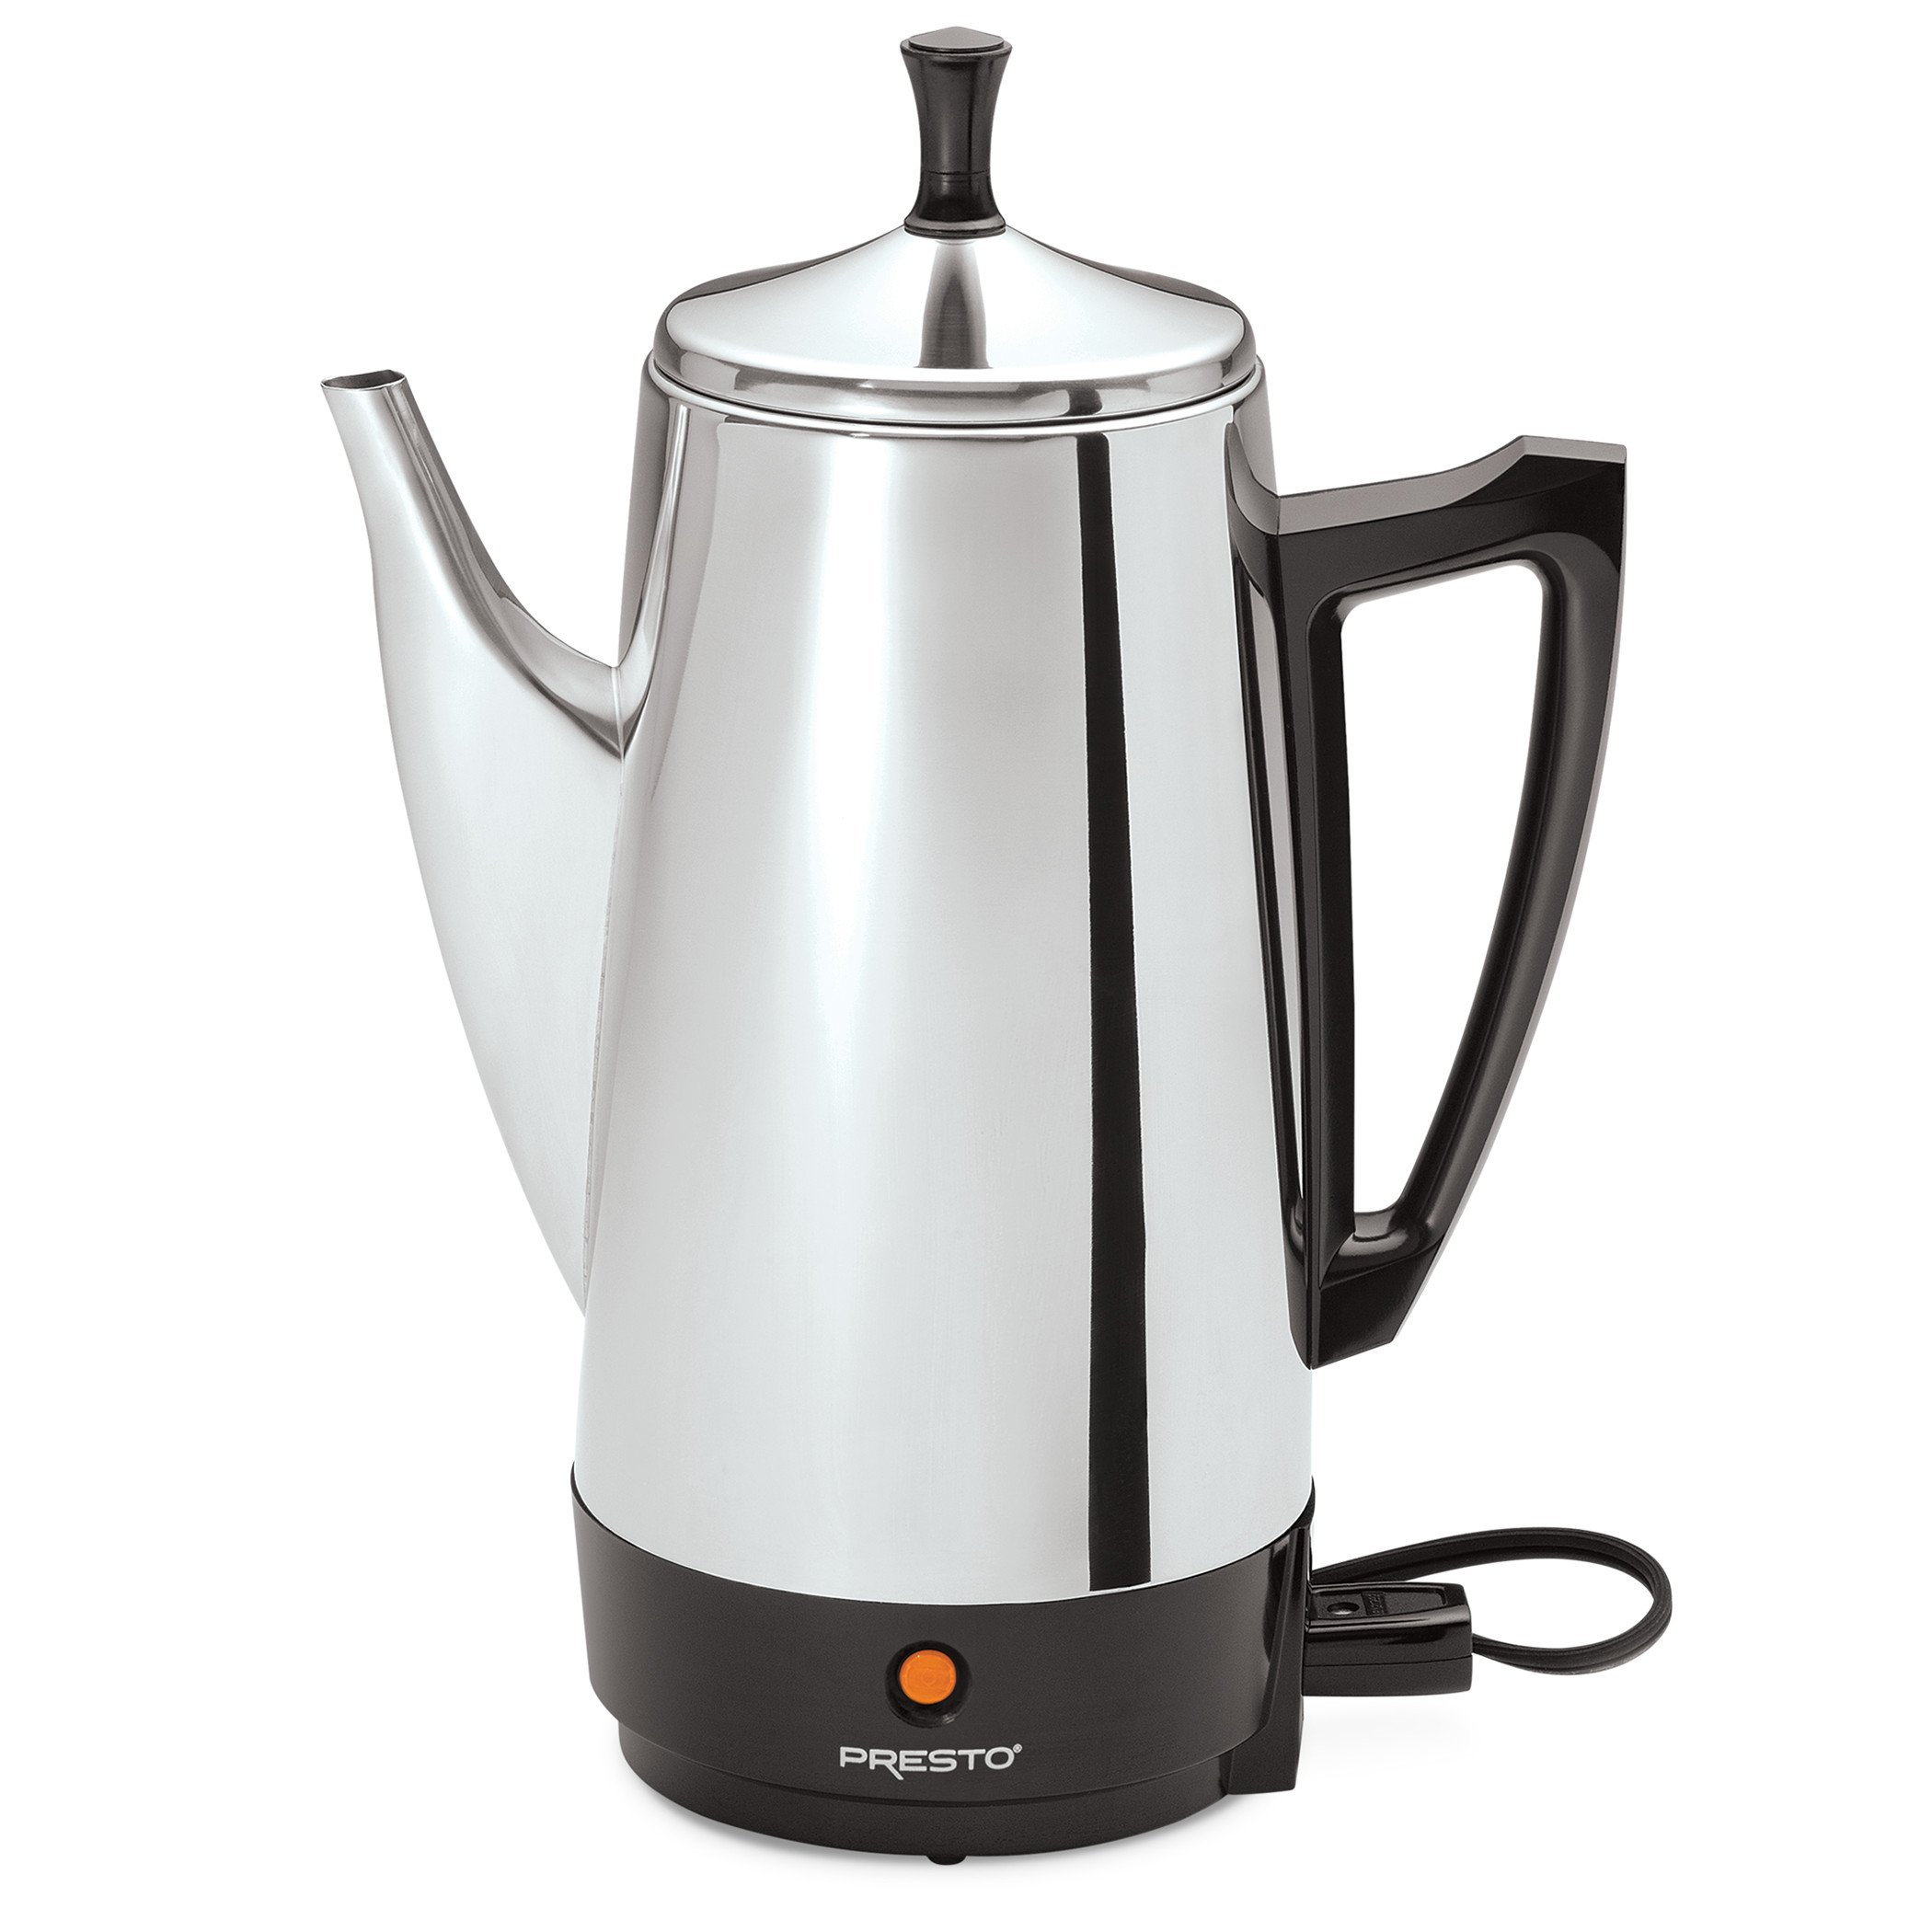 Presto 02811 12-Cup Stainless Steel Coffee Maker by Presto